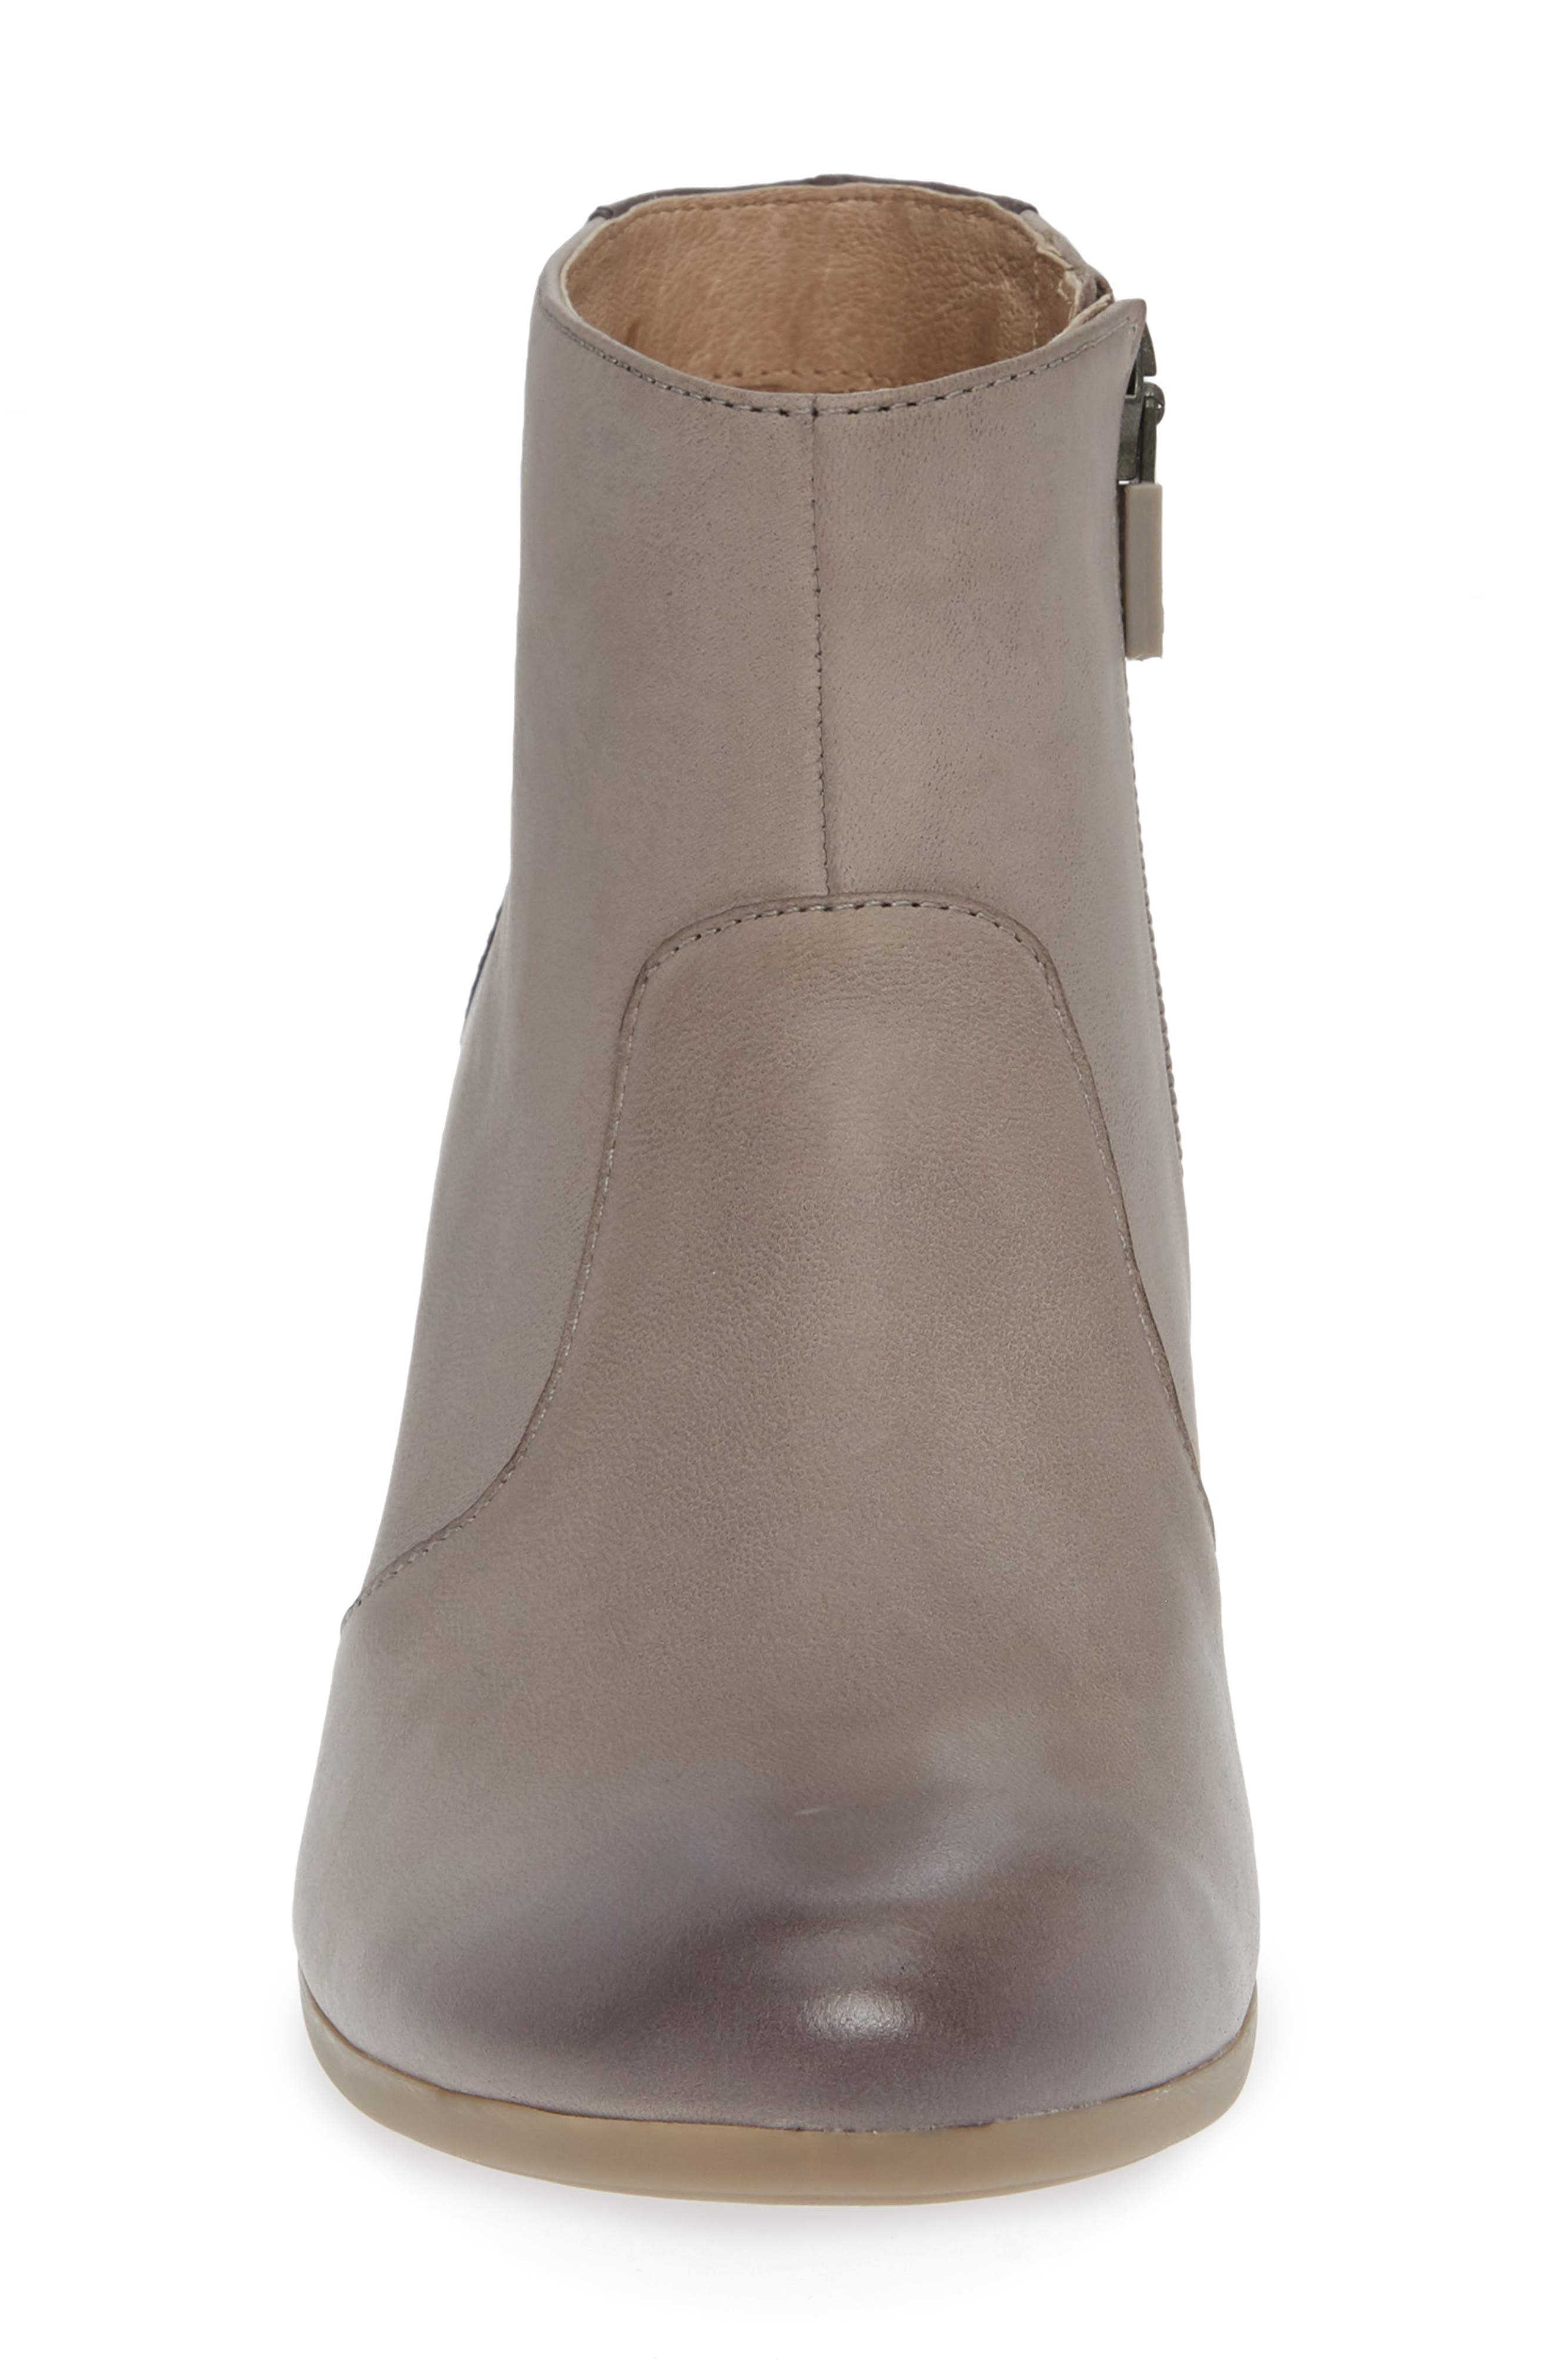 Petra Bootie,                             Alternate thumbnail 4, color,                             STONE BURNISHED NUBUCK LEATHER